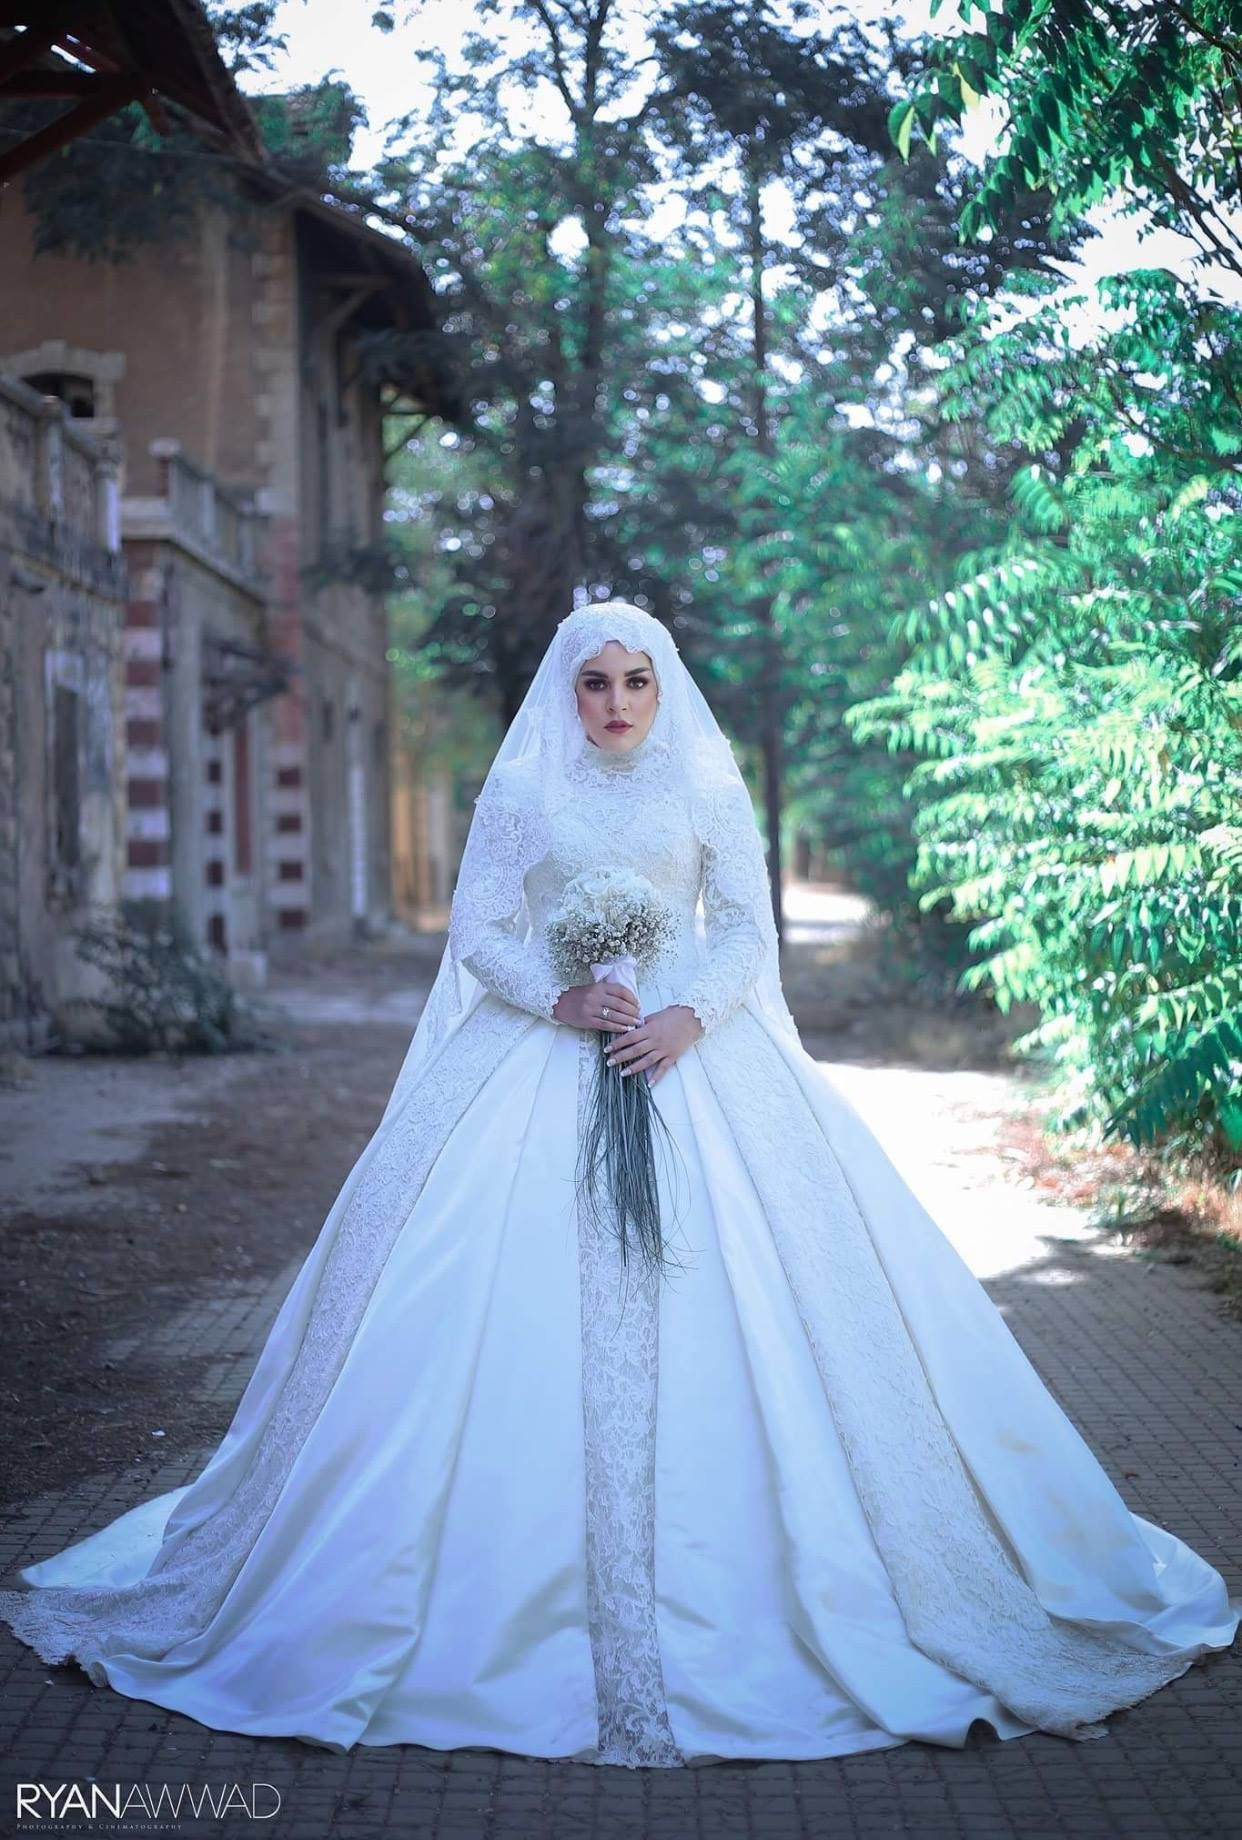 Pin by Hande Yıldırım on Bridal | Pinterest | Hijab niqab, Muslim ...